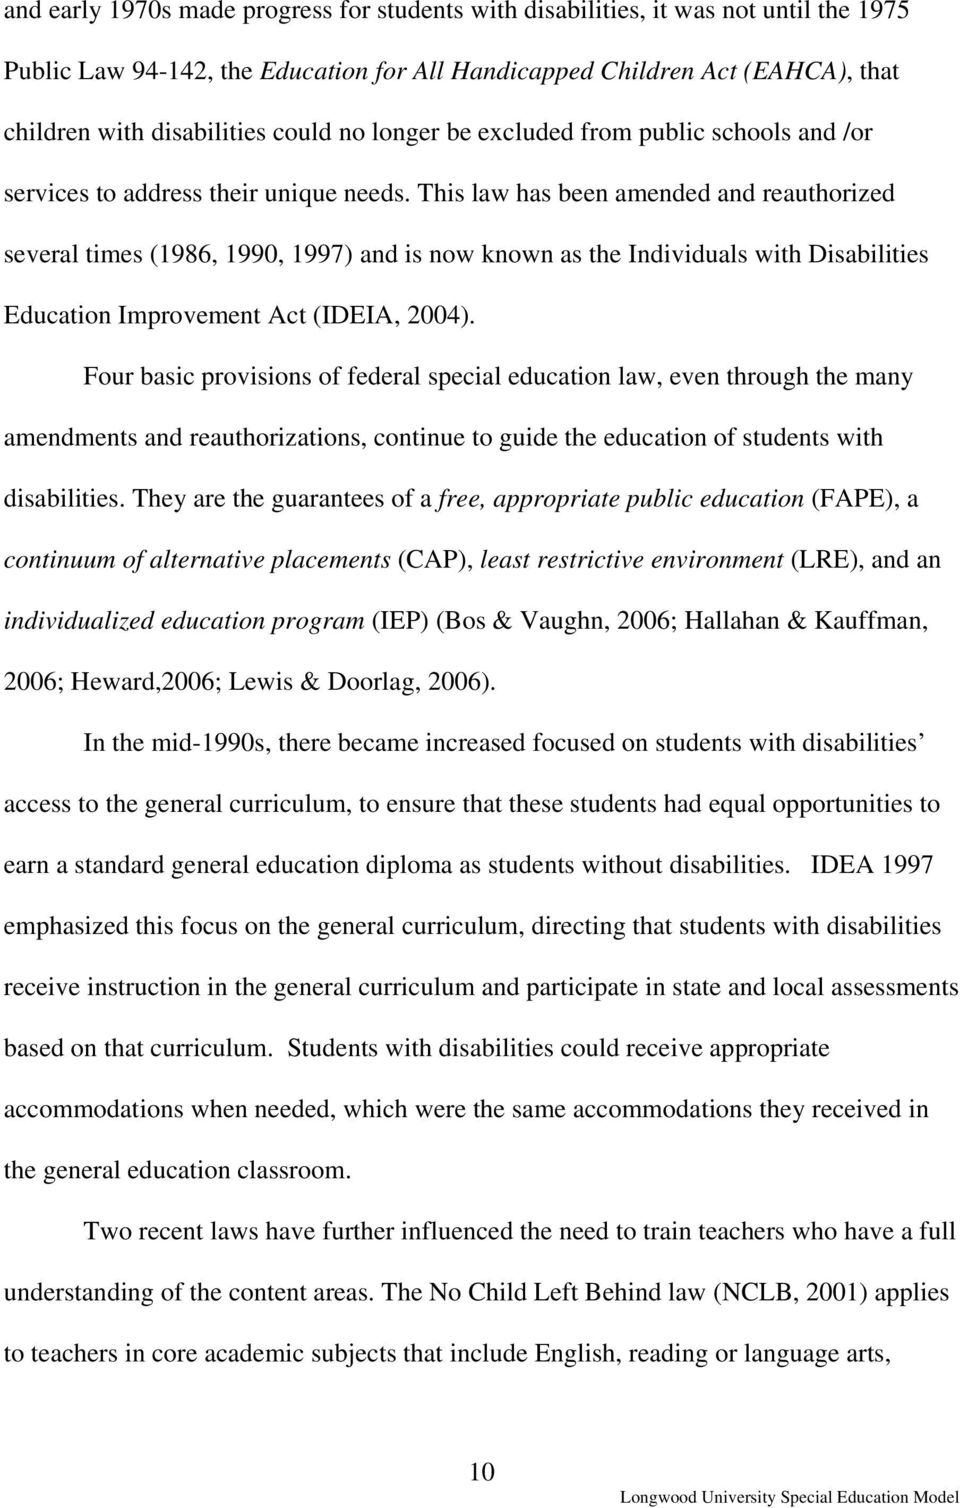 This law has been amended and reauthorized several times (1986, 1990, 1997) and is now known as the Individuals with Disabilities Education Improvement Act (IDEIA, 2004).